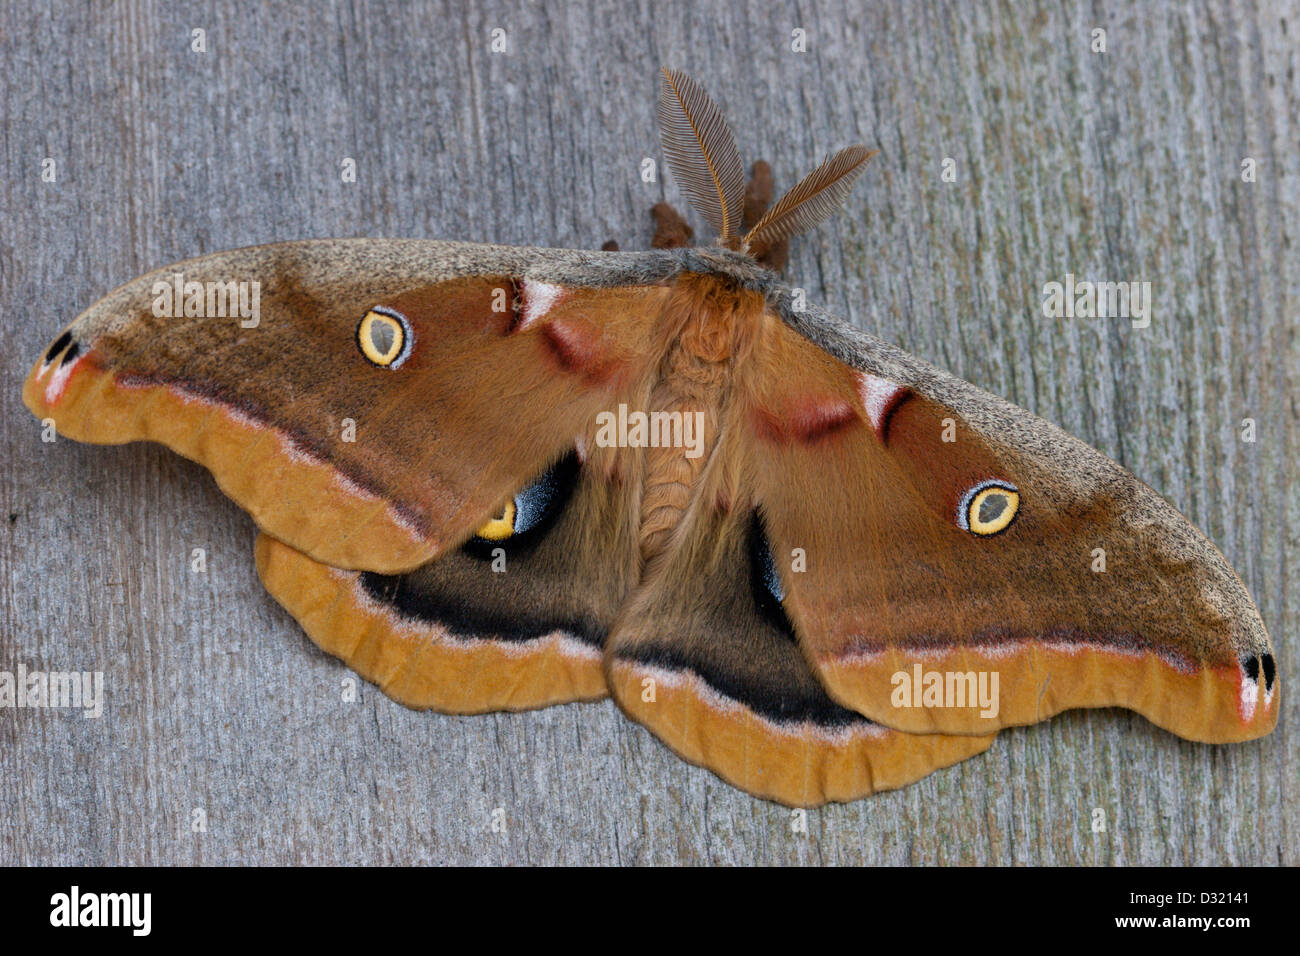 cecropia moth insect wings colourful color - Stock Image